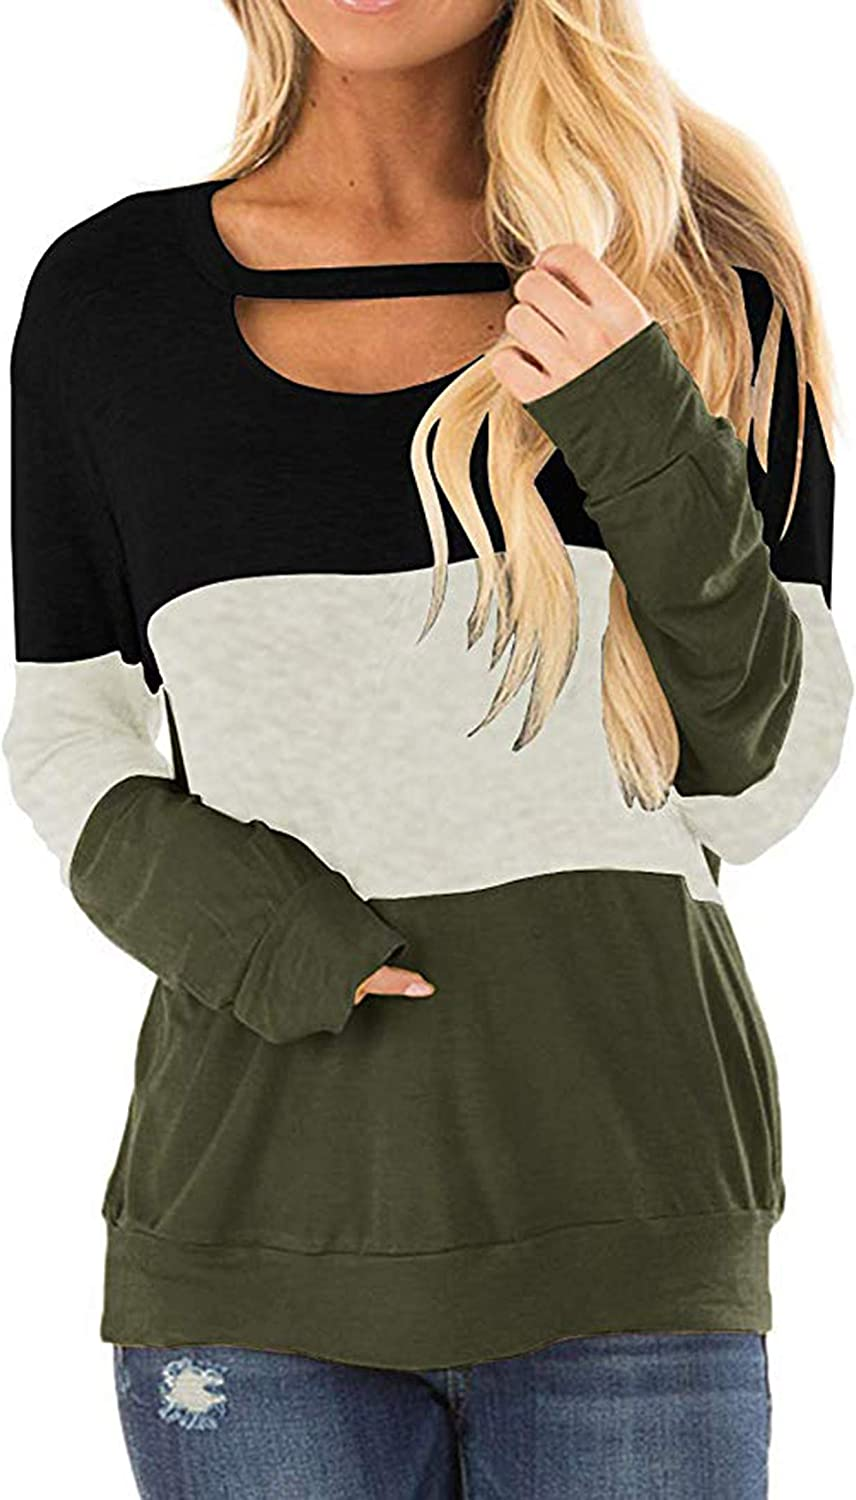 DKKK Women's Round Neck Long Sleeve Color Block Casual Loose Tunic Shirt Blouse Tops